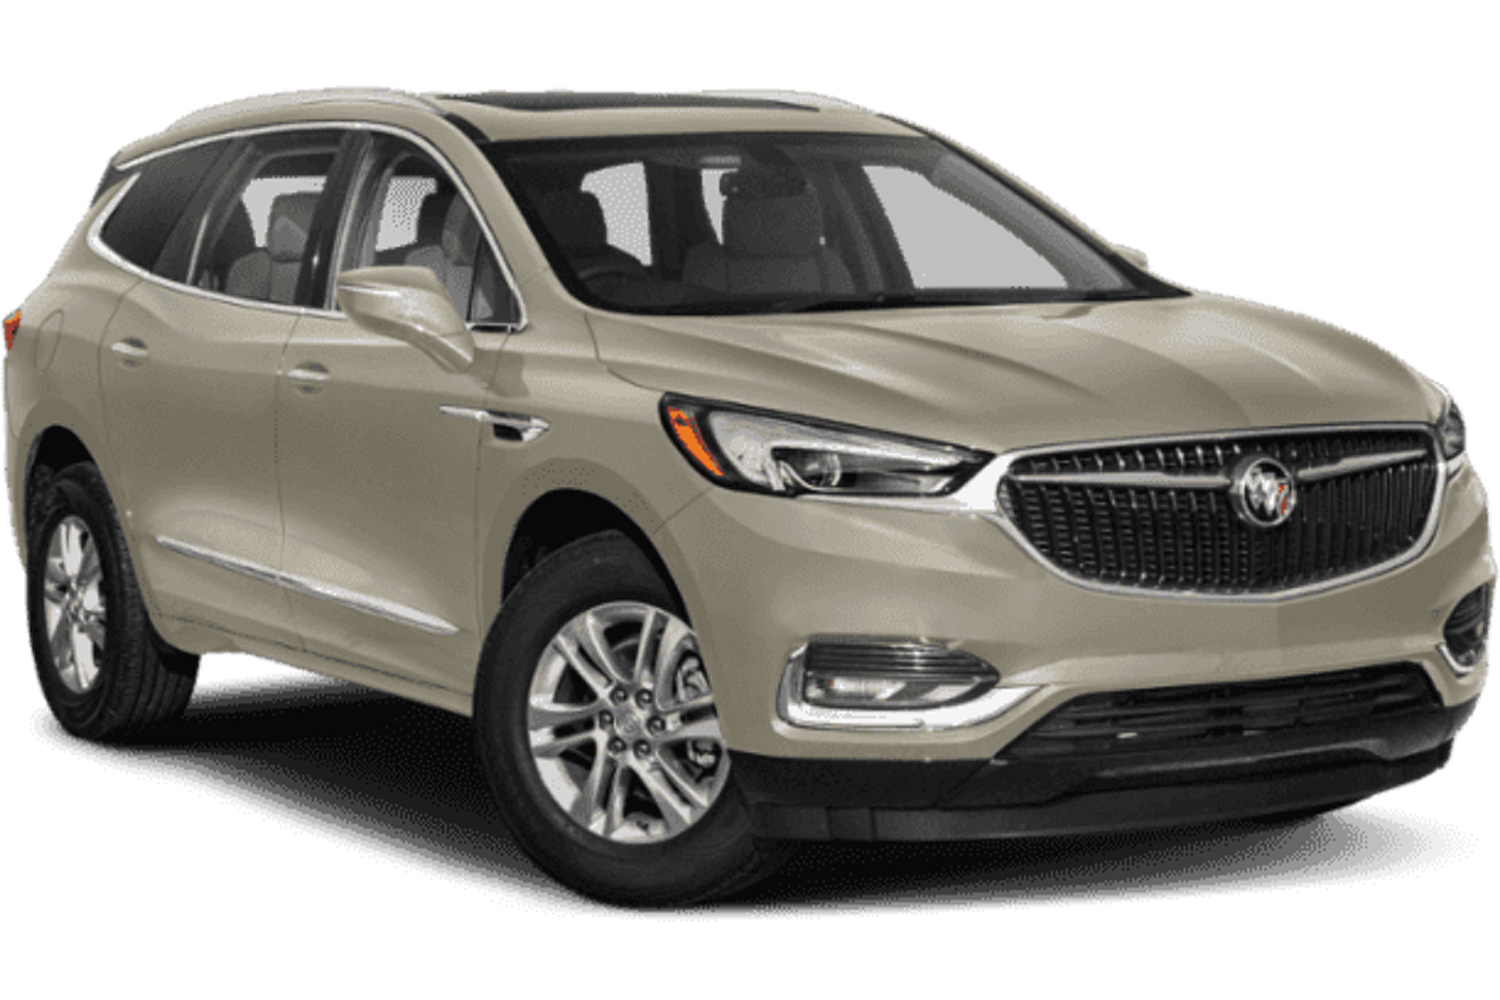 2020 Buick Enclave Gets New Champagne Gold Color | Gm Authority 2022 Buick Enclave New Colors, Oil Type, Options